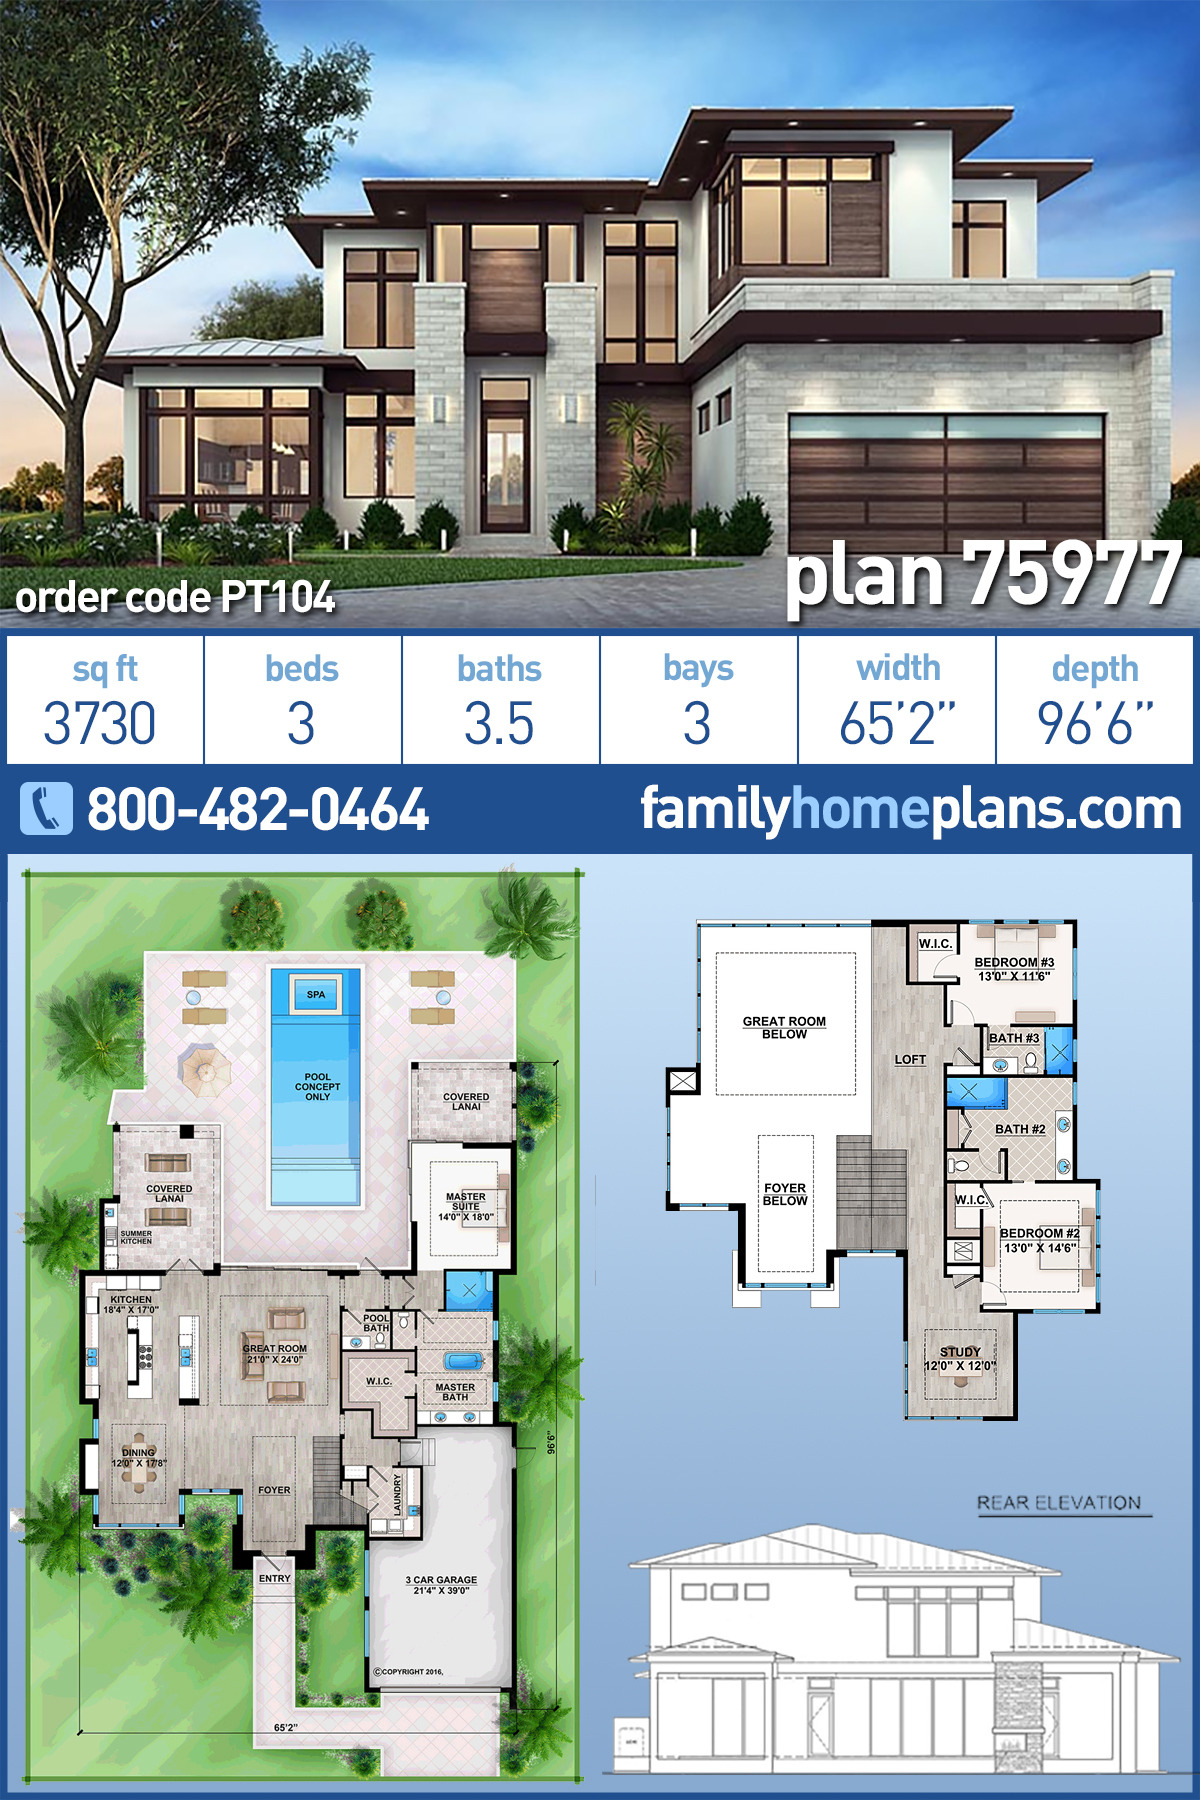 Best Modern Home Plans Beautiful Modern Style House Plan with 3 Bed 4 Bath 3 Car Garage